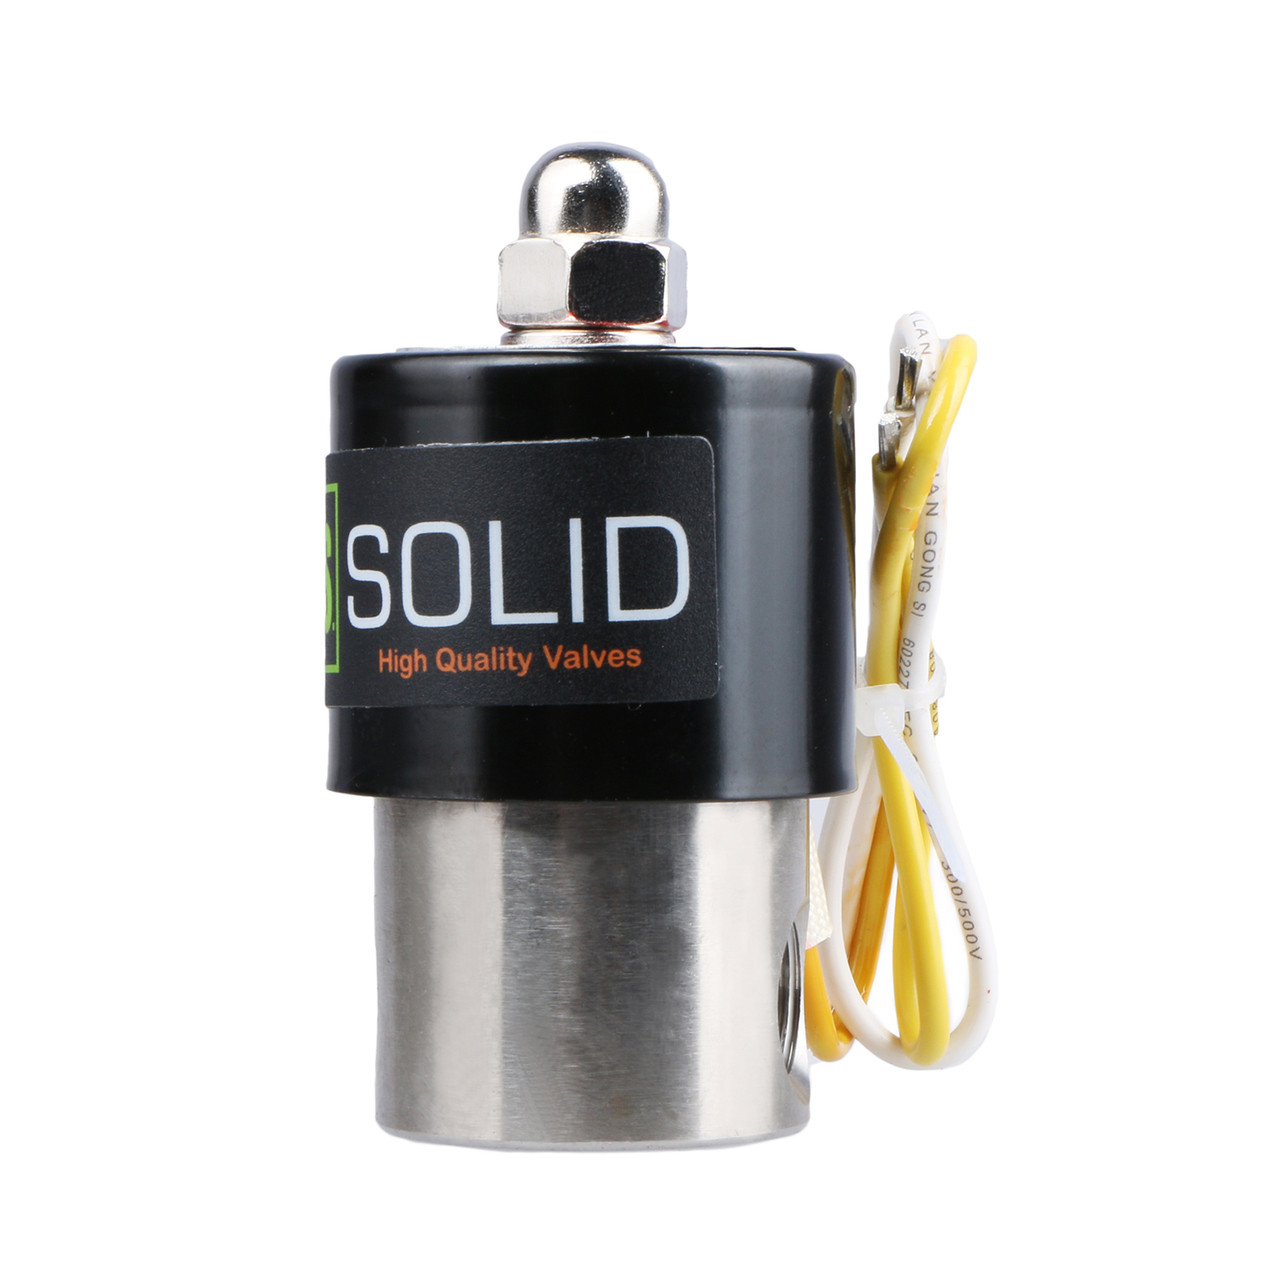 """USSOLID Electric Solenoid Valve- 1/4"""" 110V AC Solenoid Valve Stainless Steel Body Normally Closed, VITON SEAL"""